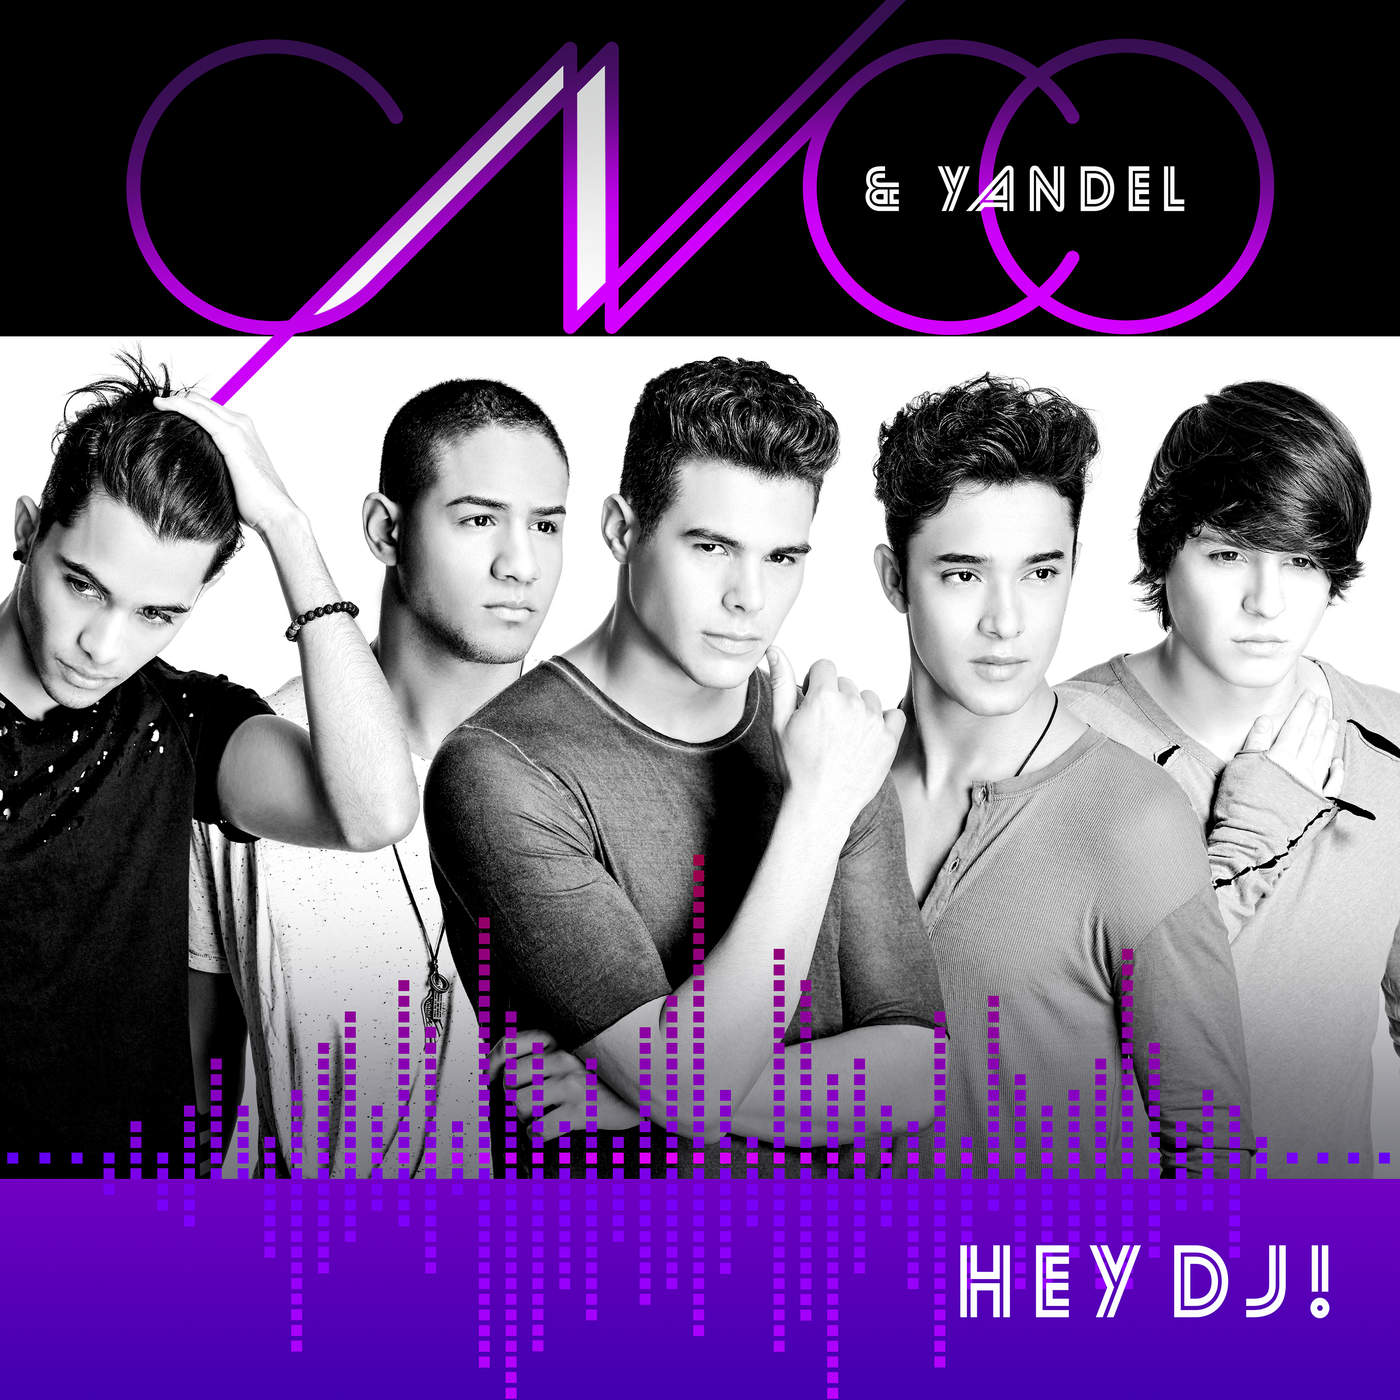 CNCO & Yandel - Hey DJ - Single